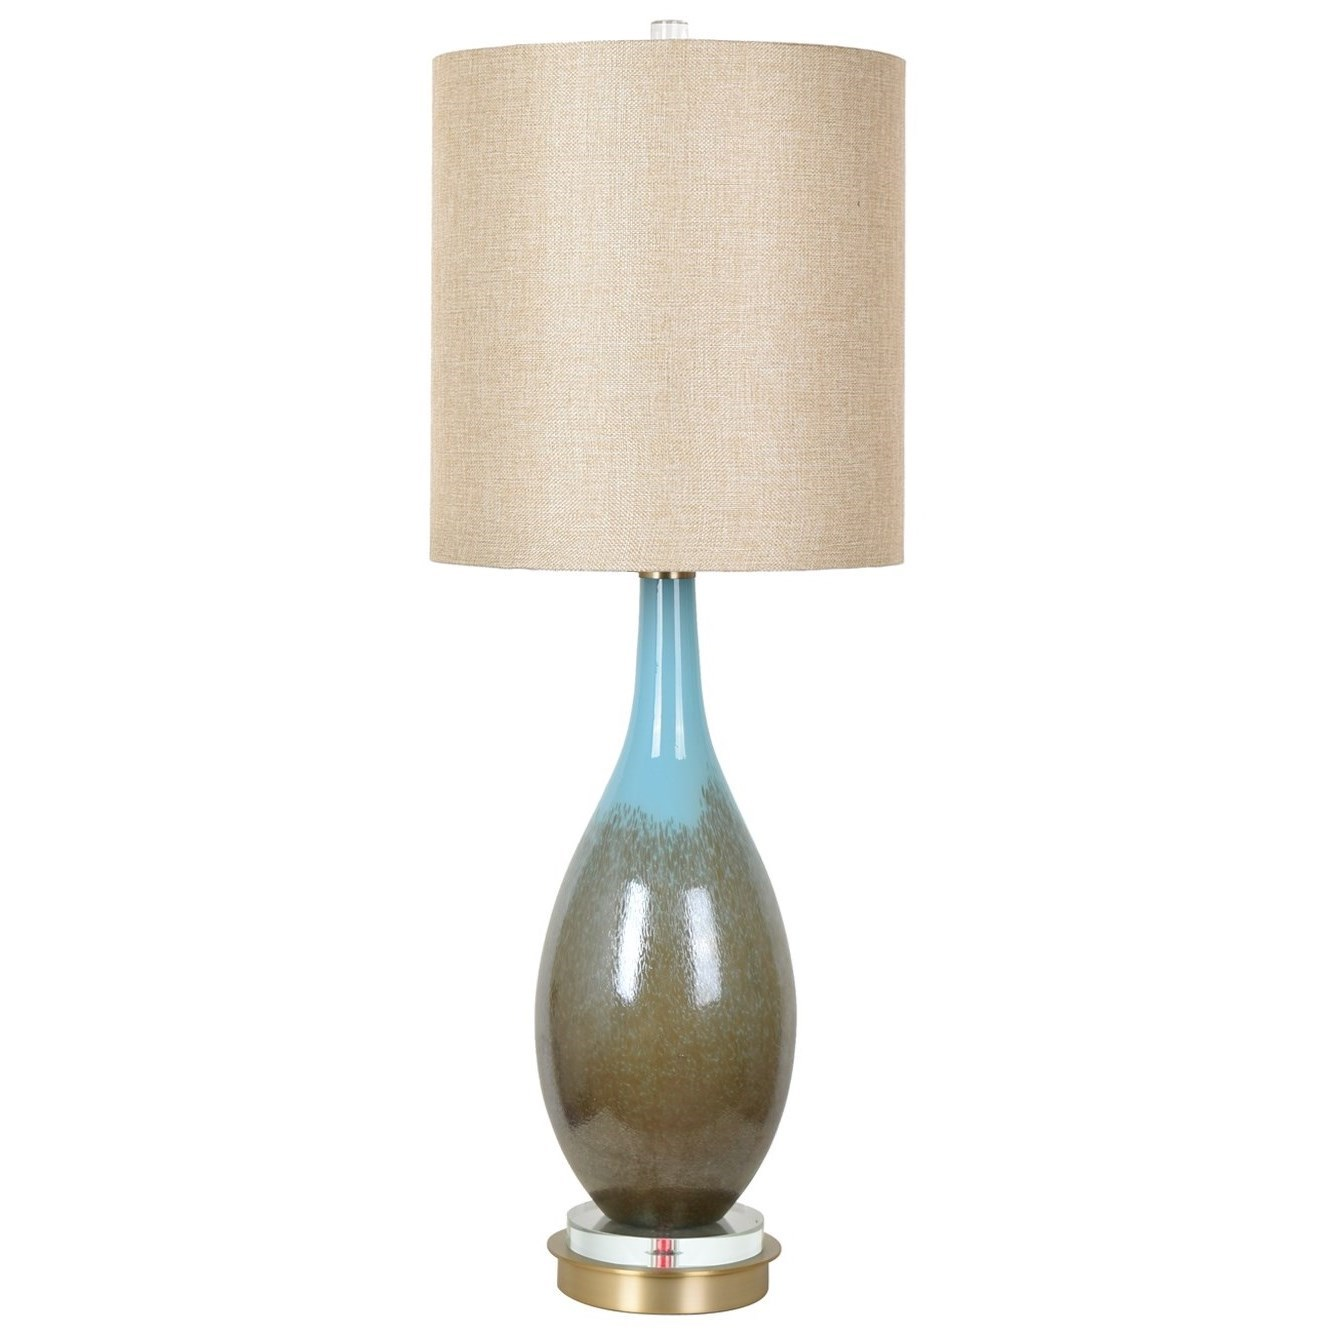 Lighting Mia Table Lamp by Crestview Collection at Rife's Home Furniture